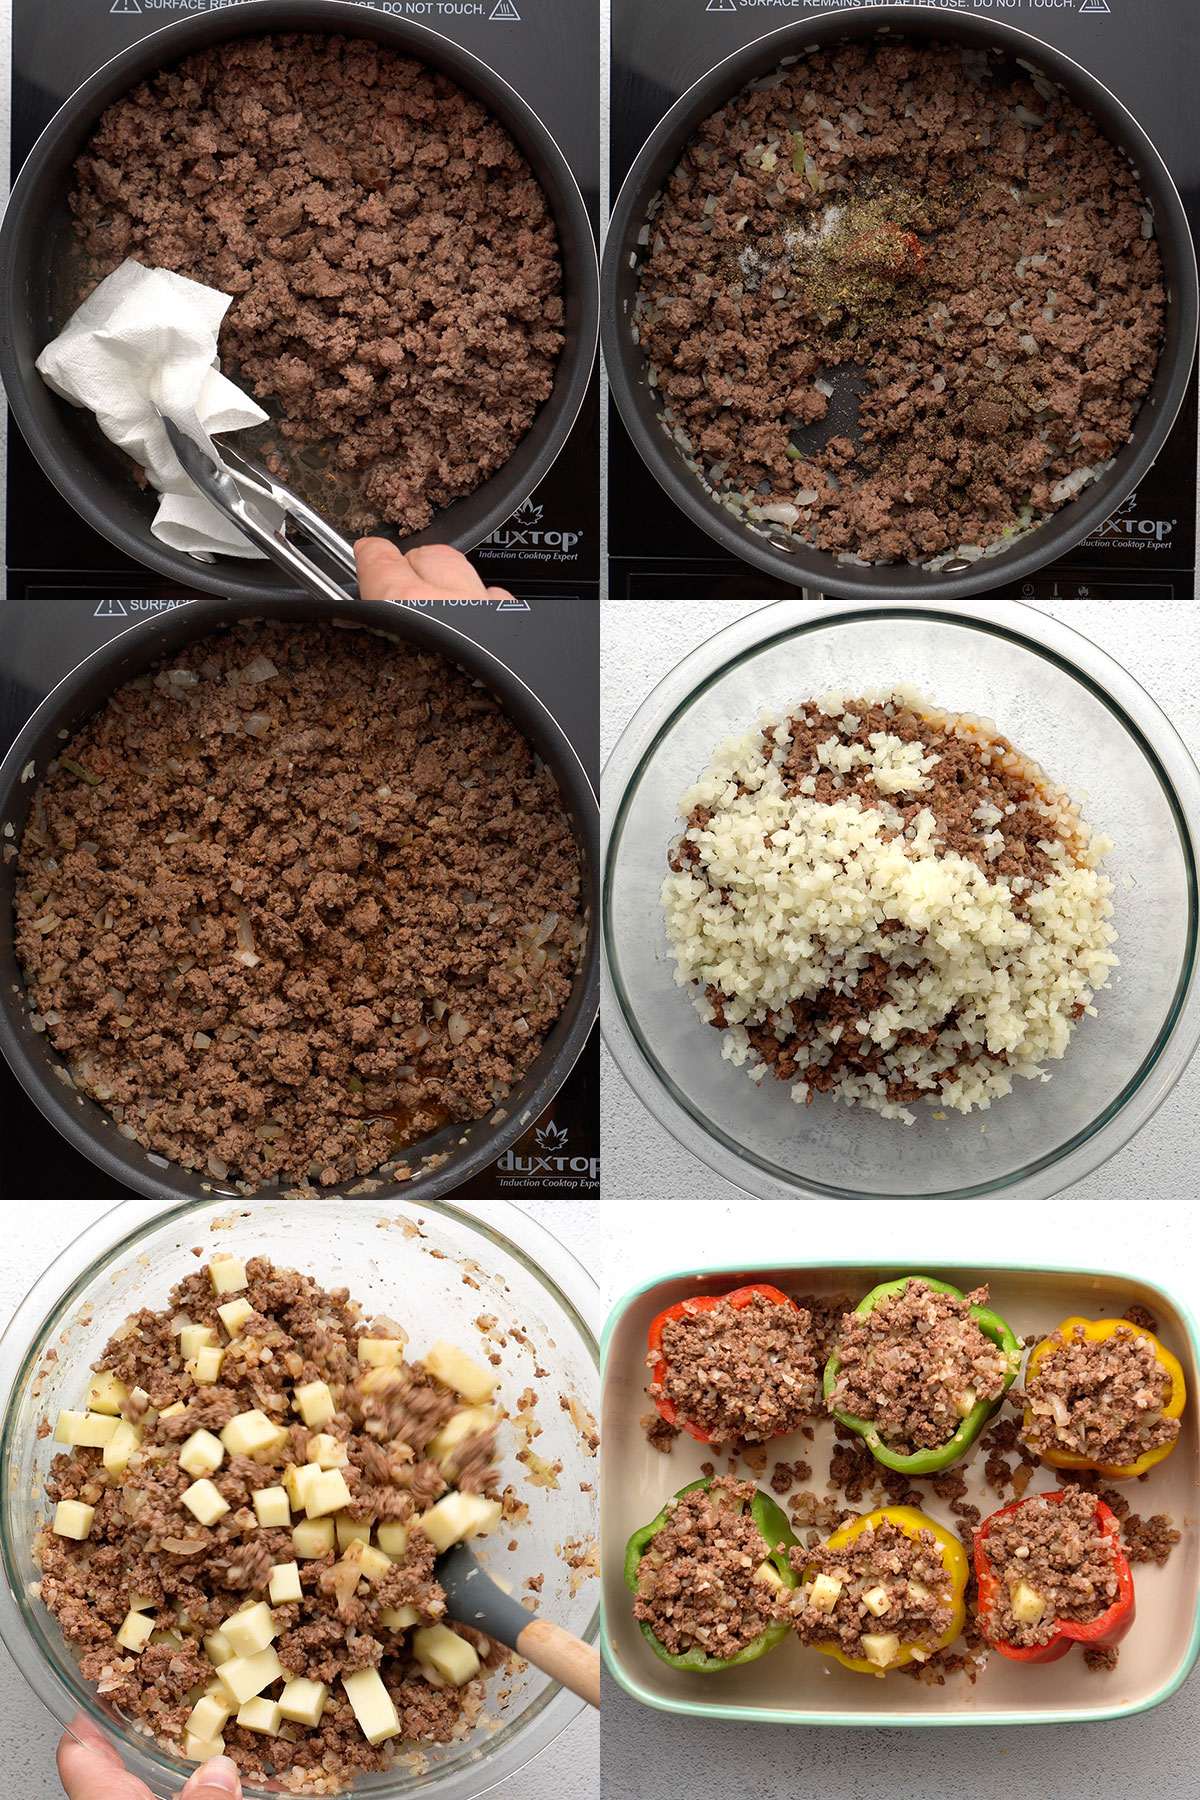 Step by step process photos of making the ground beef filling with vegetables and cheese.